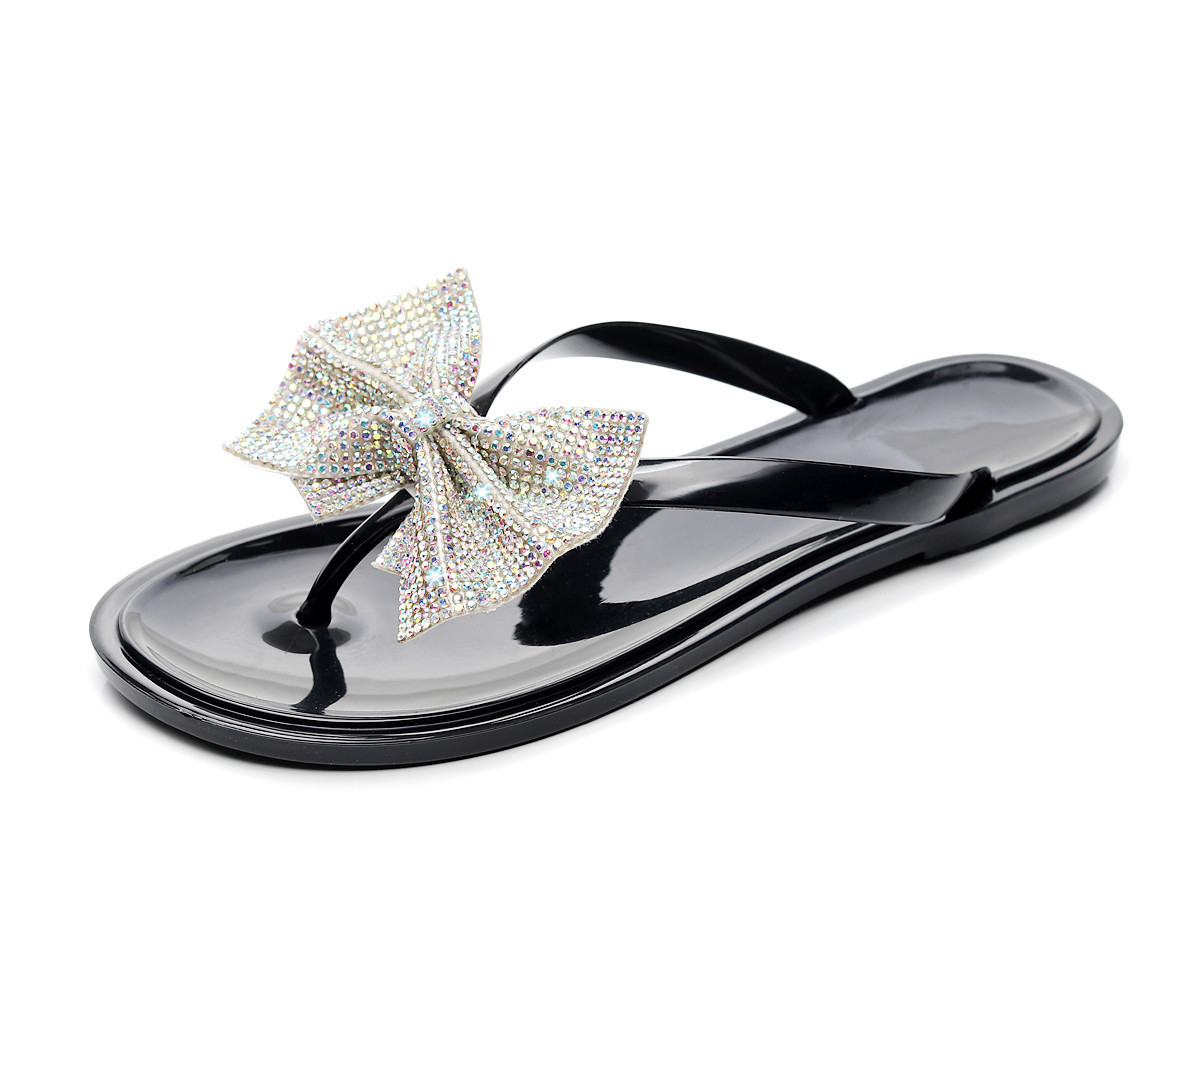 Women Leisure Bow Flip-Flops Flash Drilling Sequins Sandals Beach Flats Rain Jelly House shoes woman Flip Flops zapatos de mujer